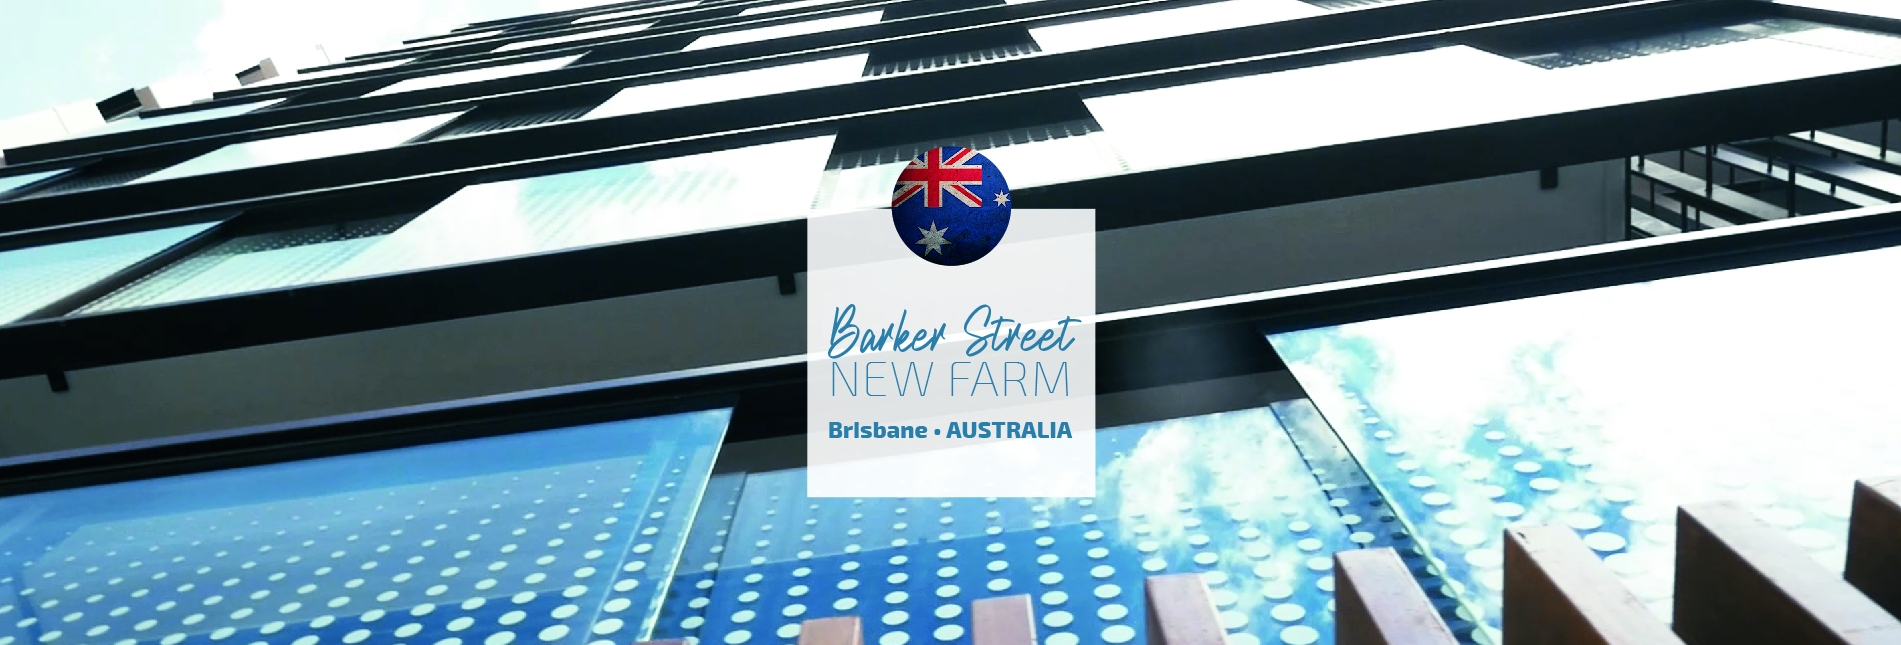 Barker st, New farm, Brisbane, Qld Australia